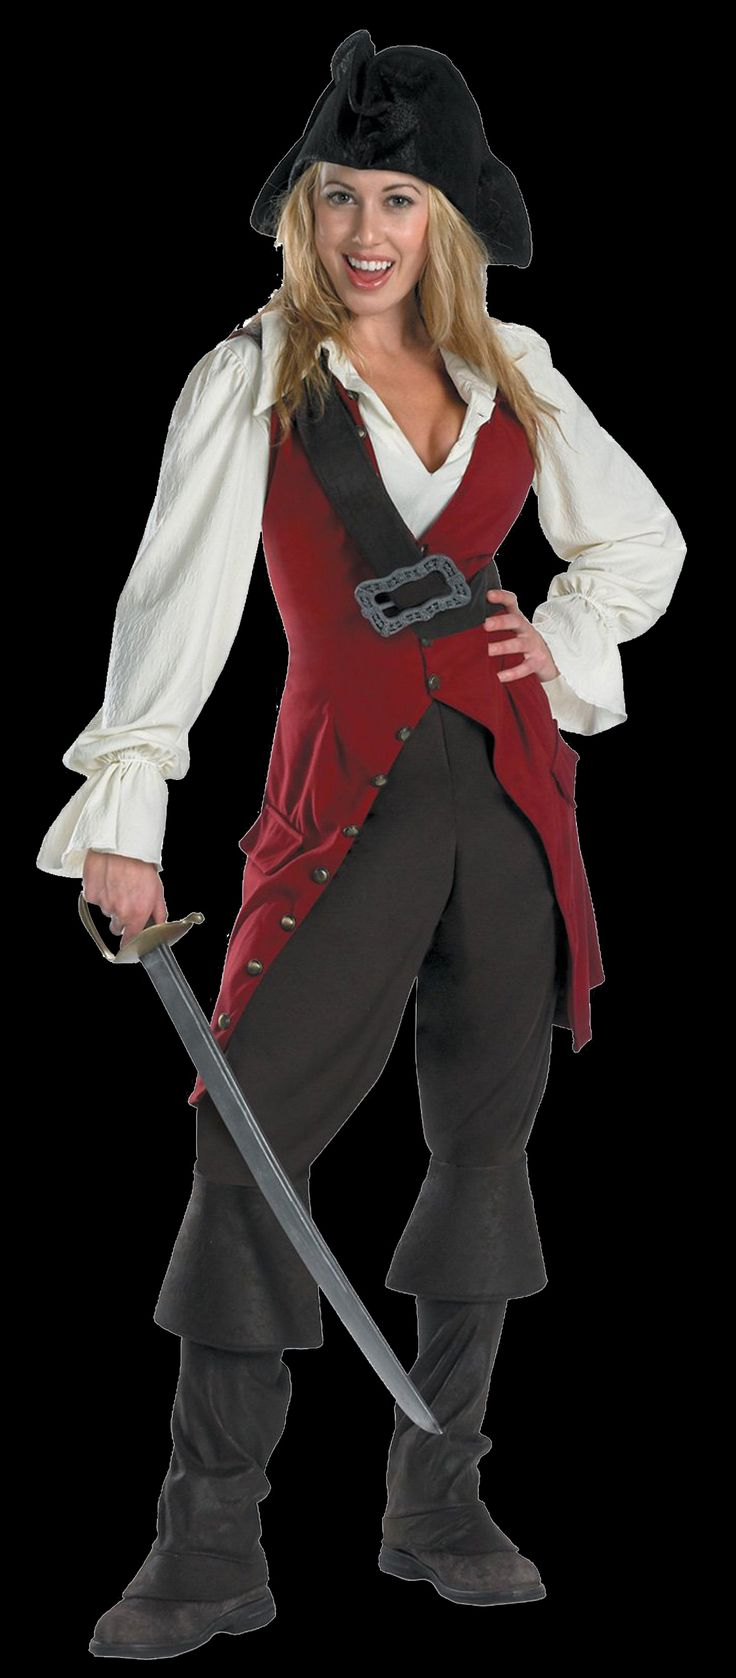 Elizabeth swann costume for adults hell! Missing